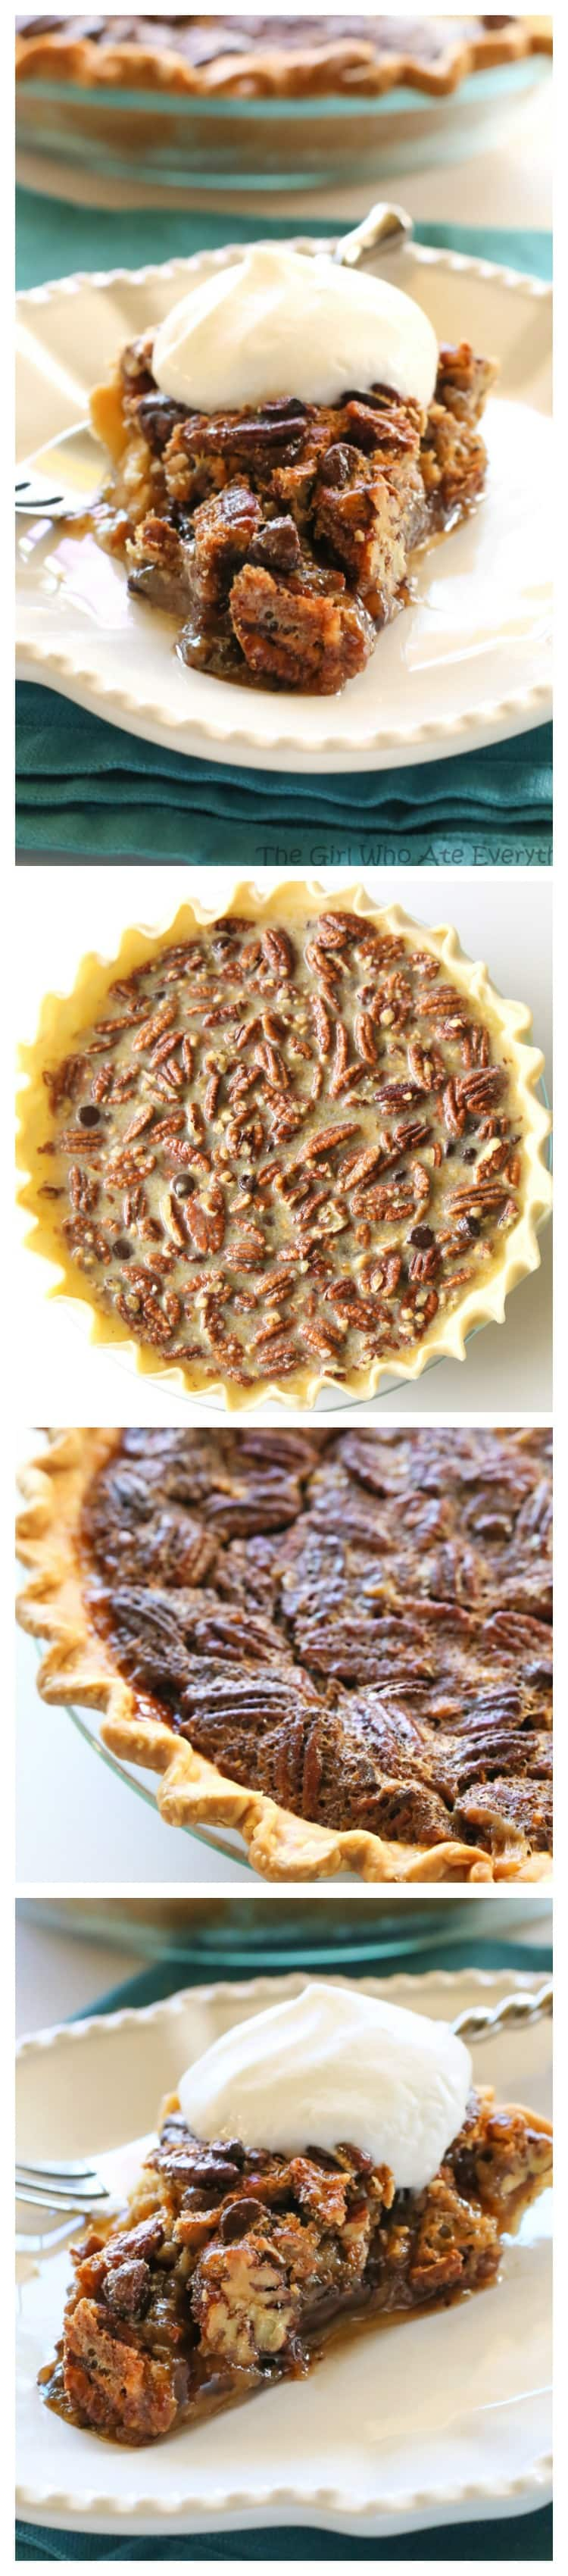 Chocolate Pecan Pie - The Girl Who Ate Everything